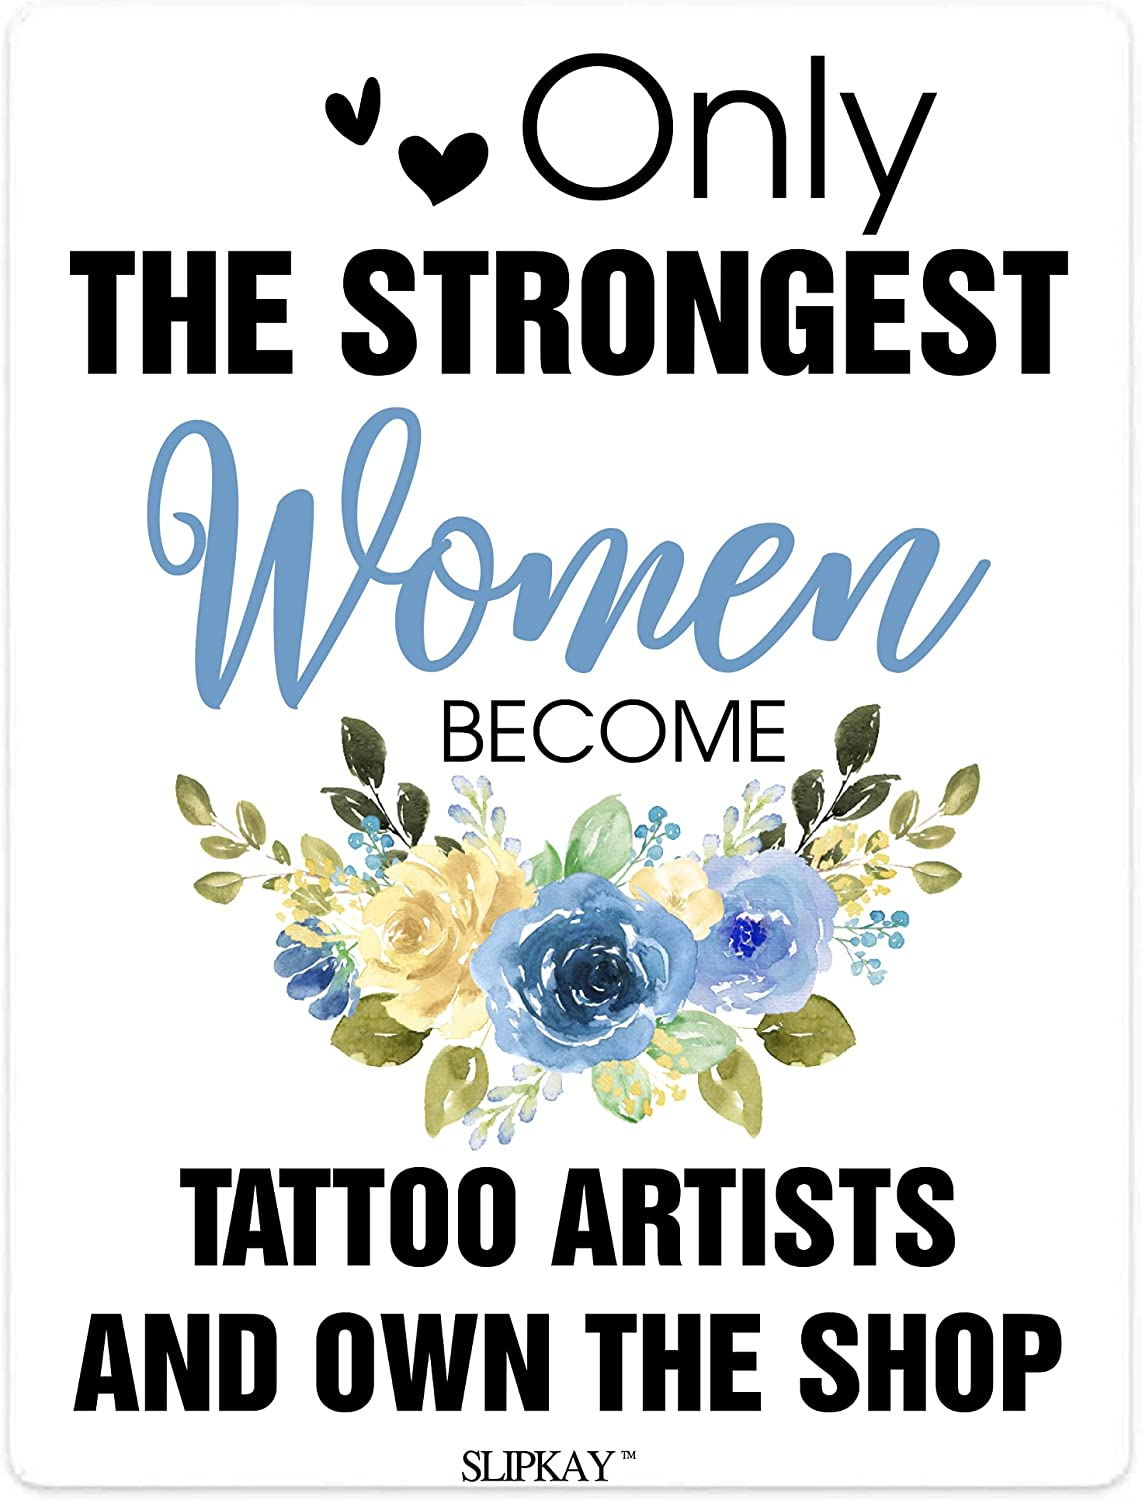 Only The Strongest Women Become Tattoo Artists and Own The Shop